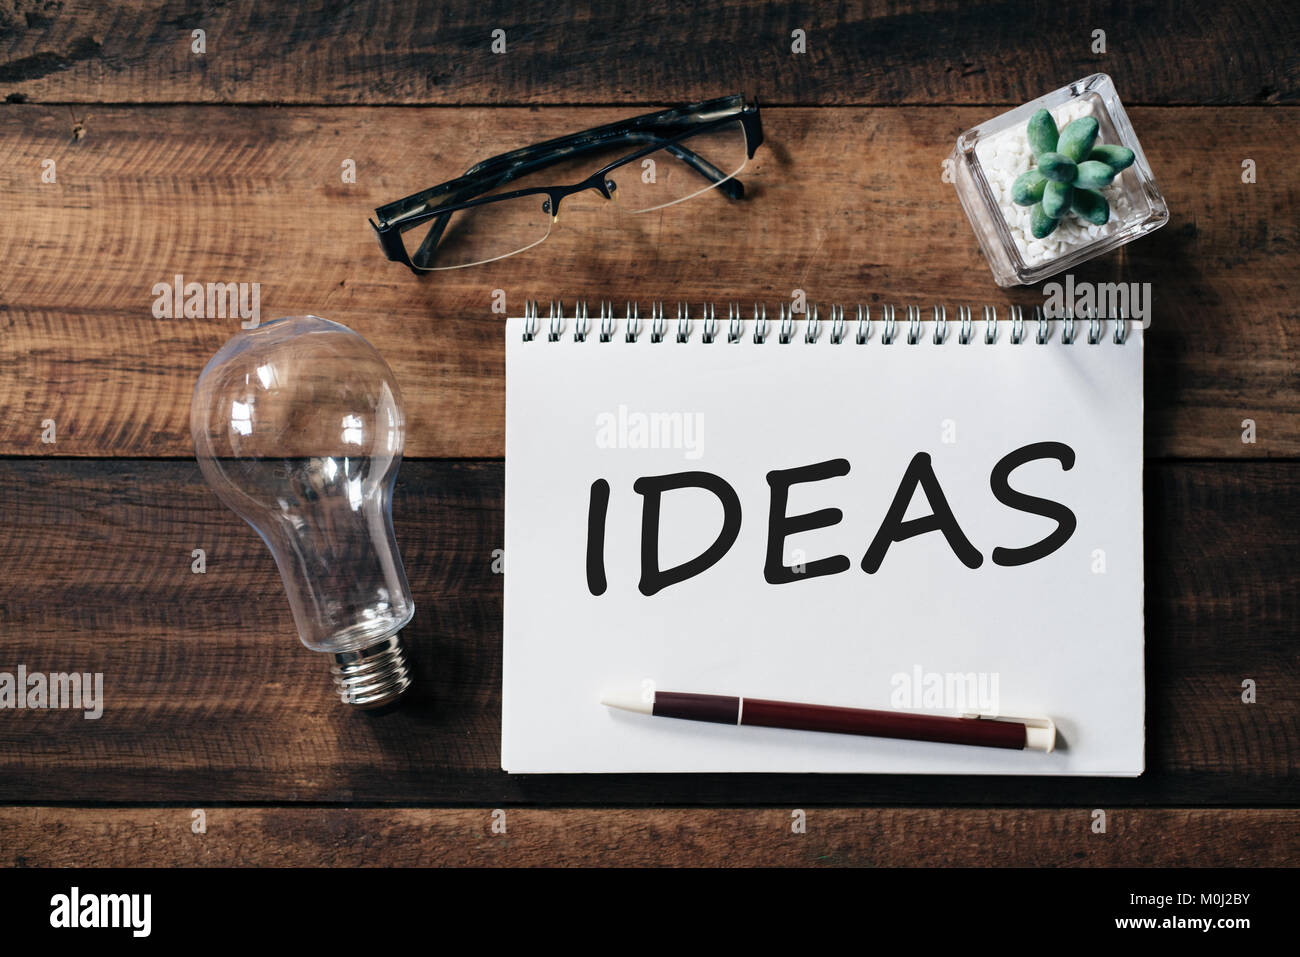 bulb, glasses, cactus, and notebook with IDEAS word. ideas concept Stock Photo